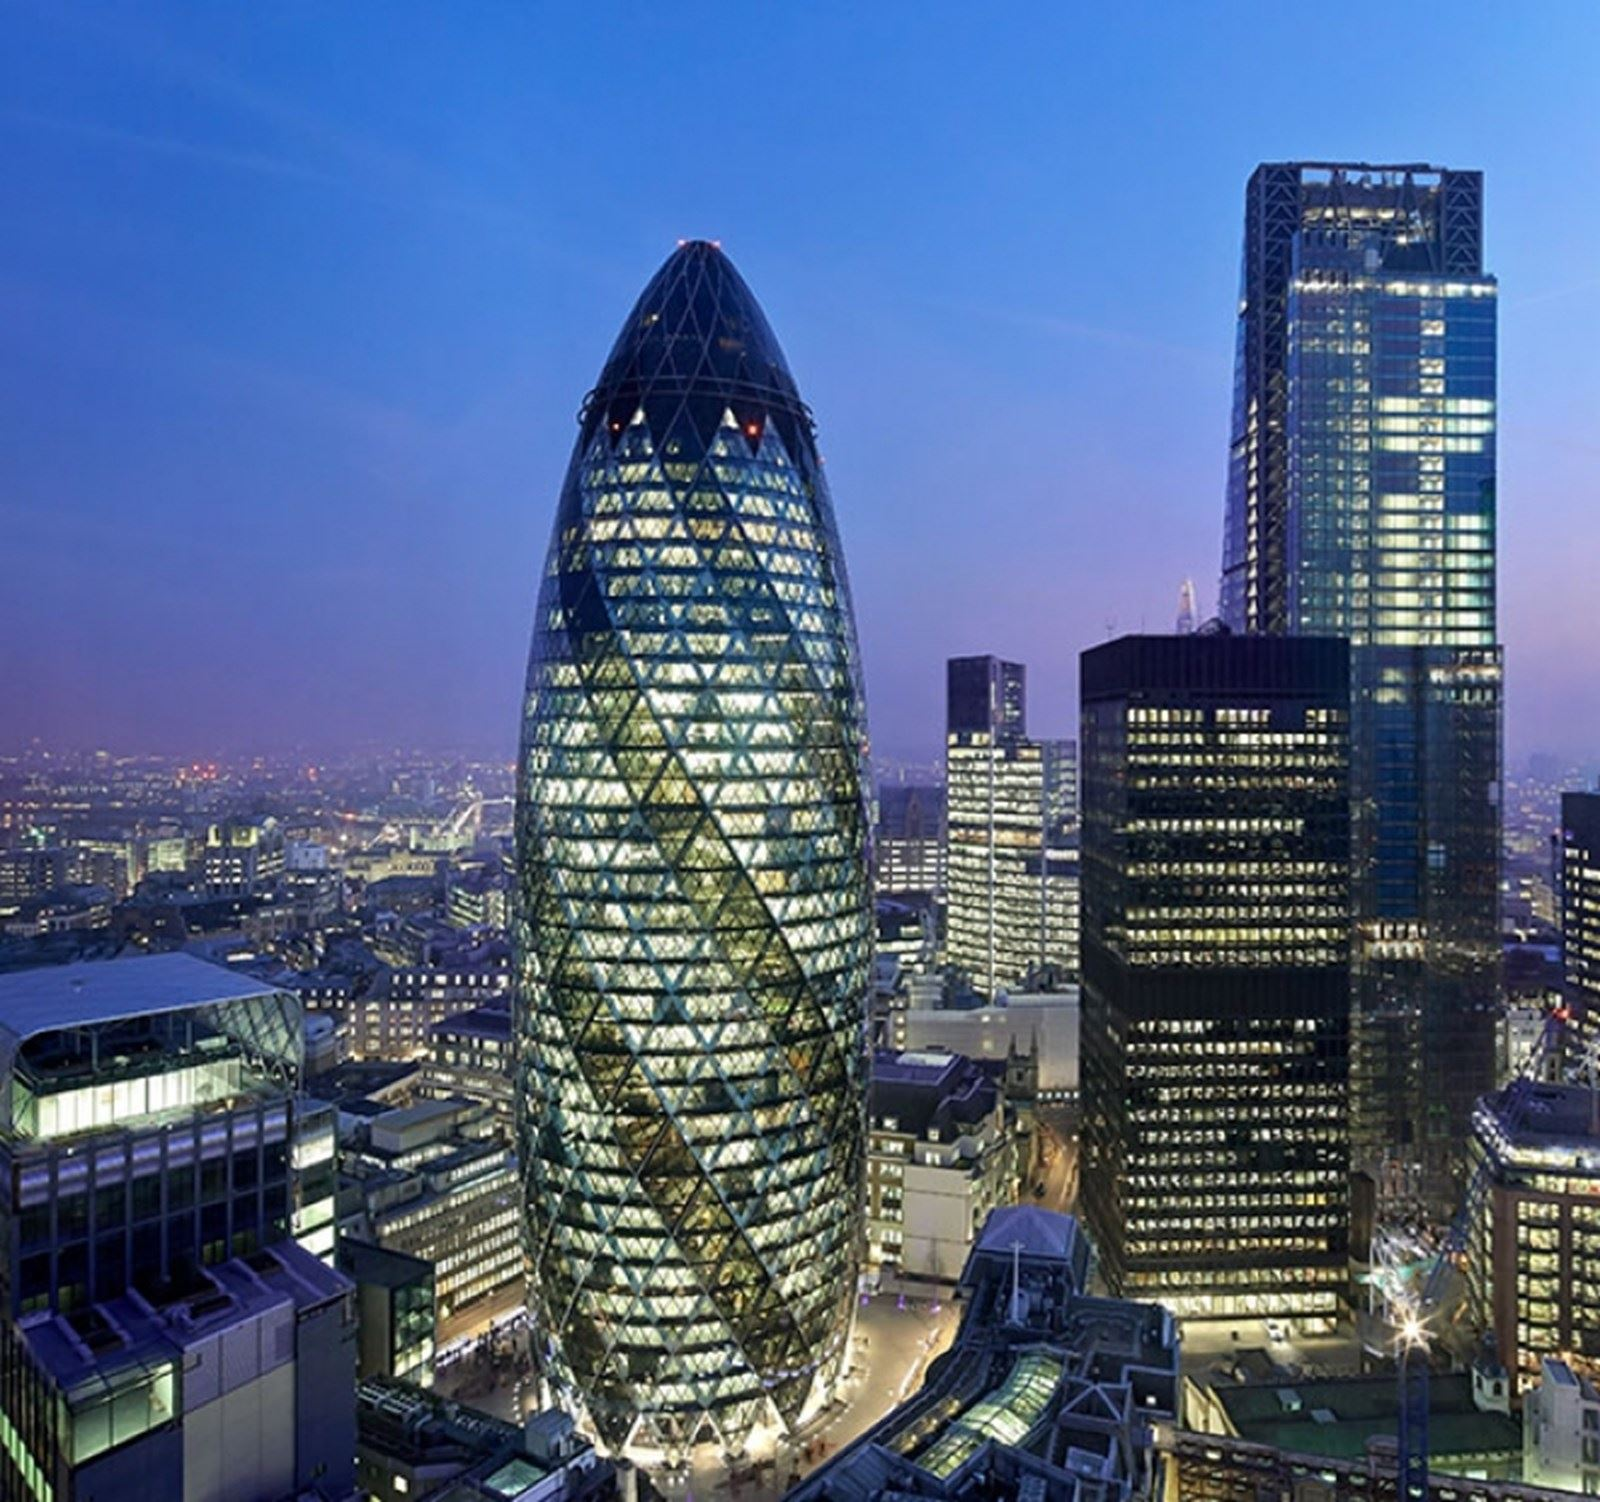 Office to Rent, The Gherkin, 30 St Mary Axe, EC3A 8ET - CBRE Commercial